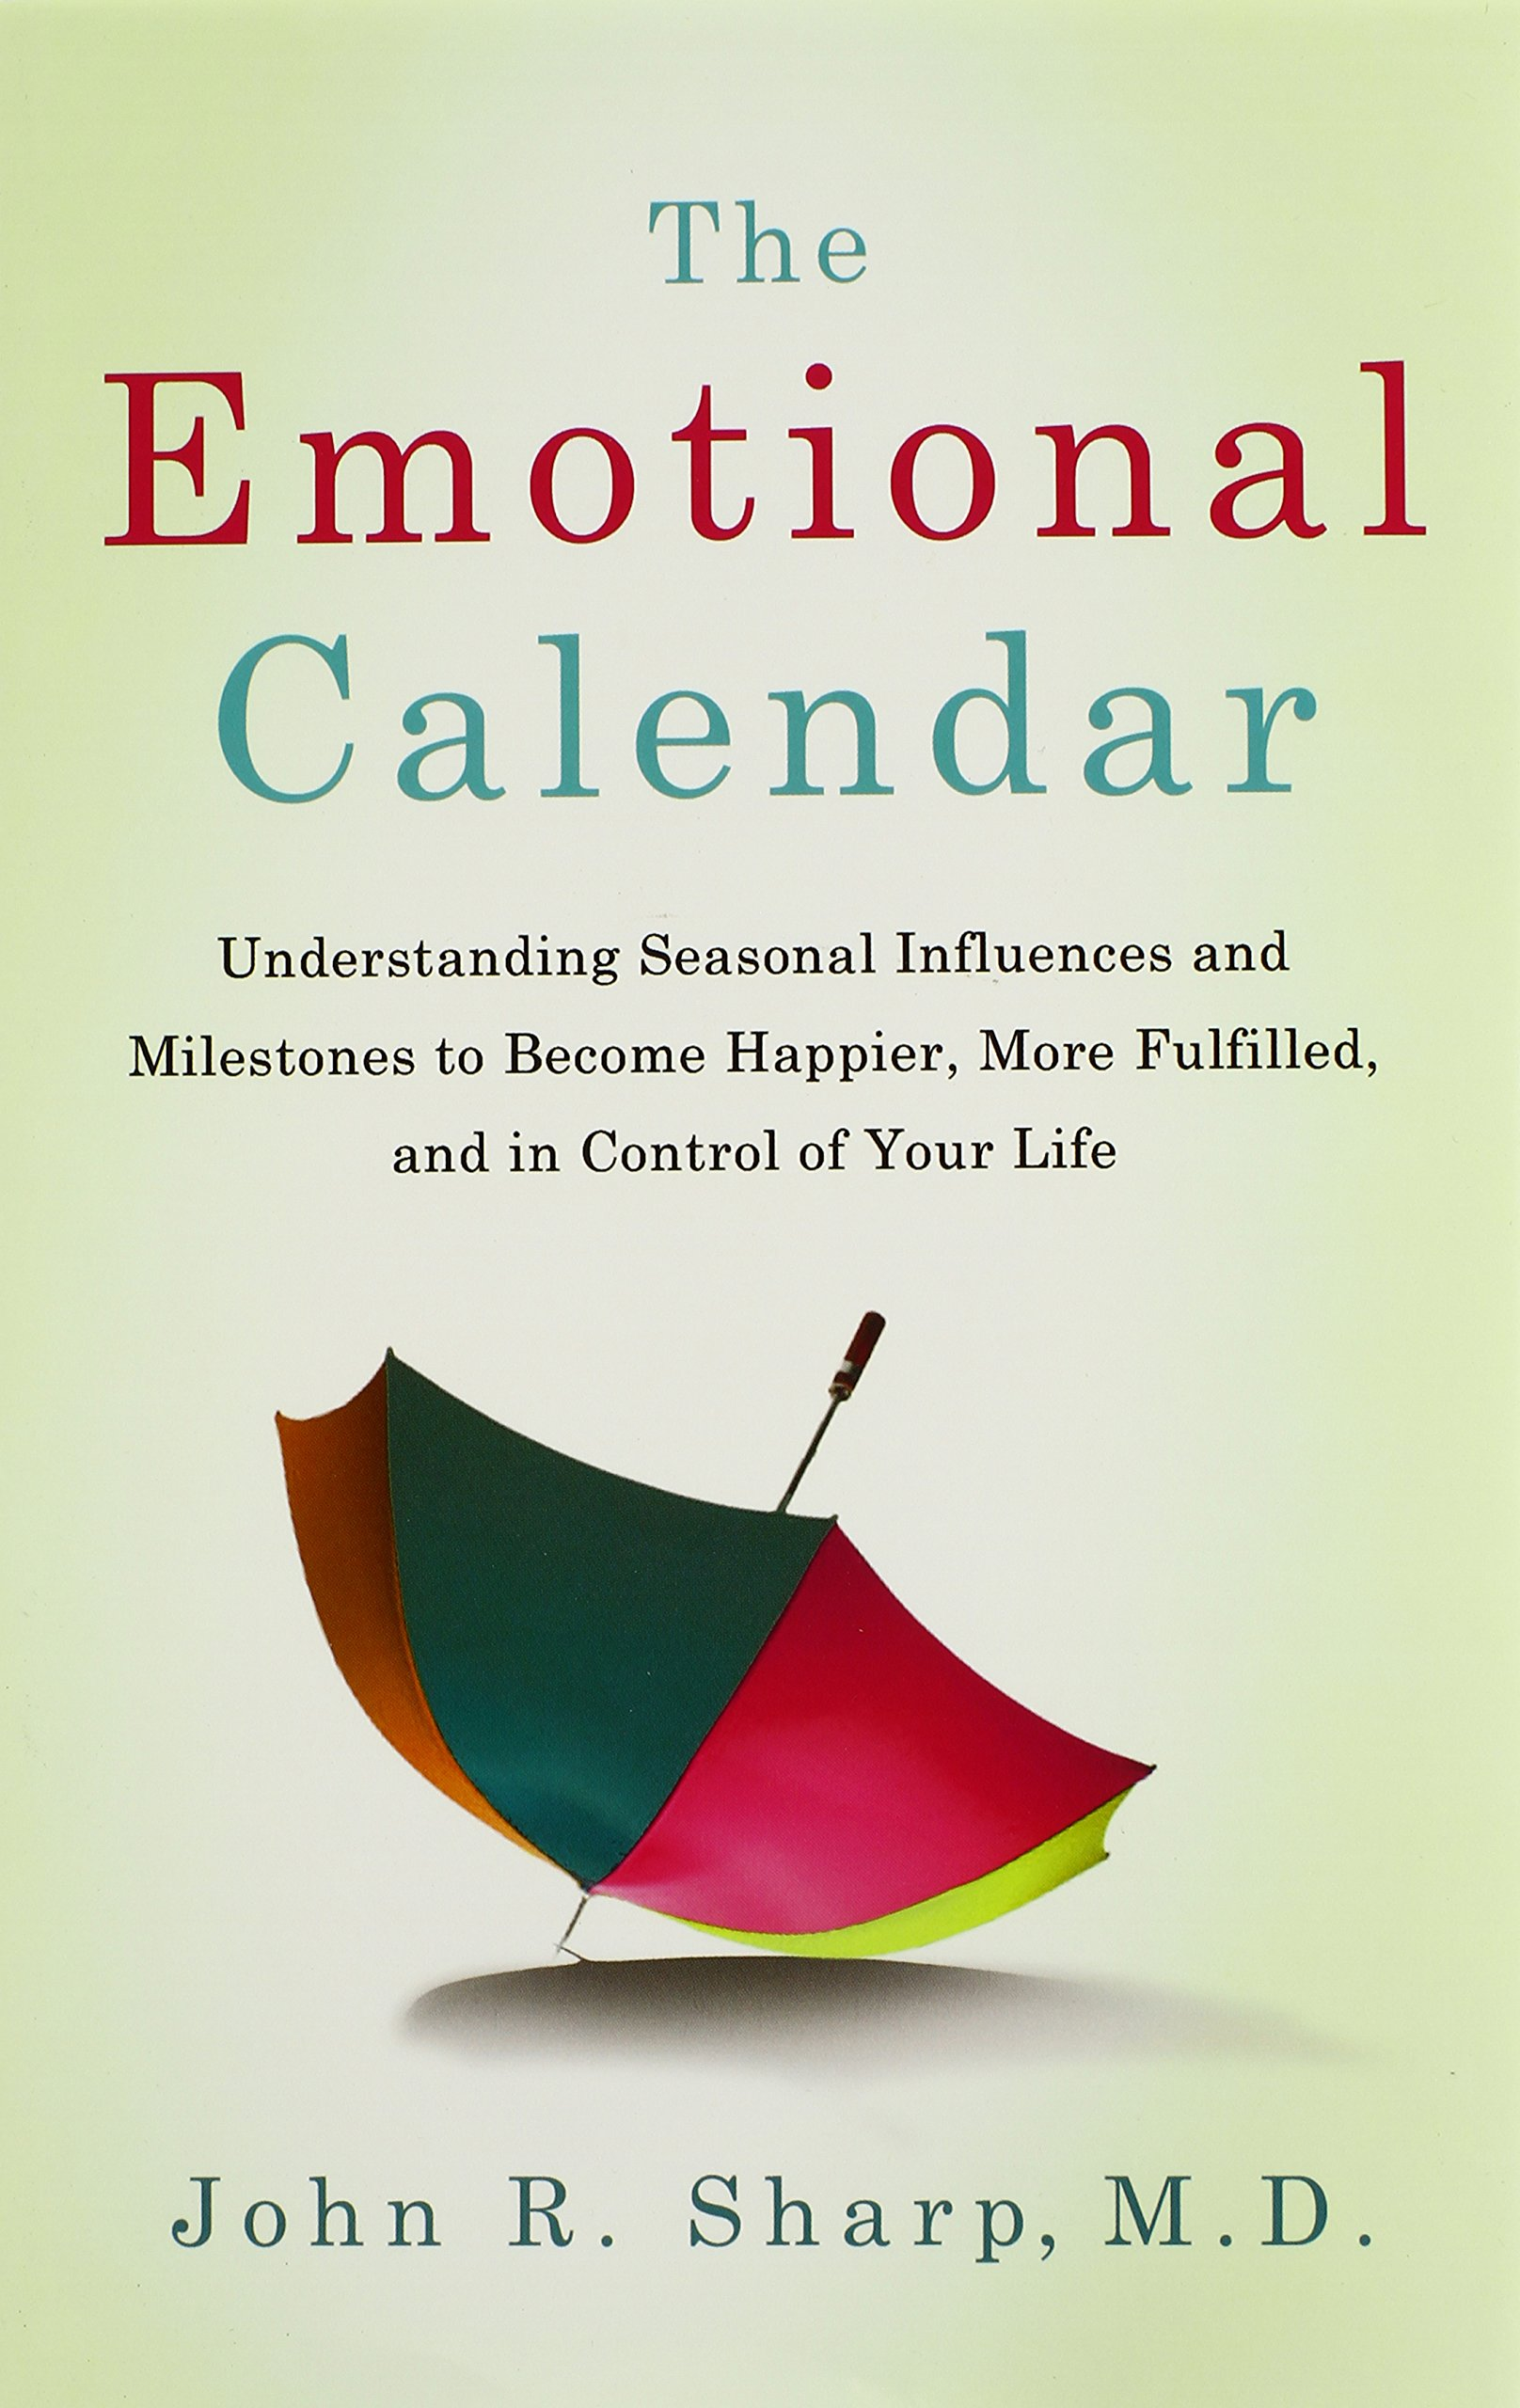 The Emotional Calendar: Understanding Seasonal Influences and Milestones to Become Happier, More Fulfilled, and in Control of Your Life ebook